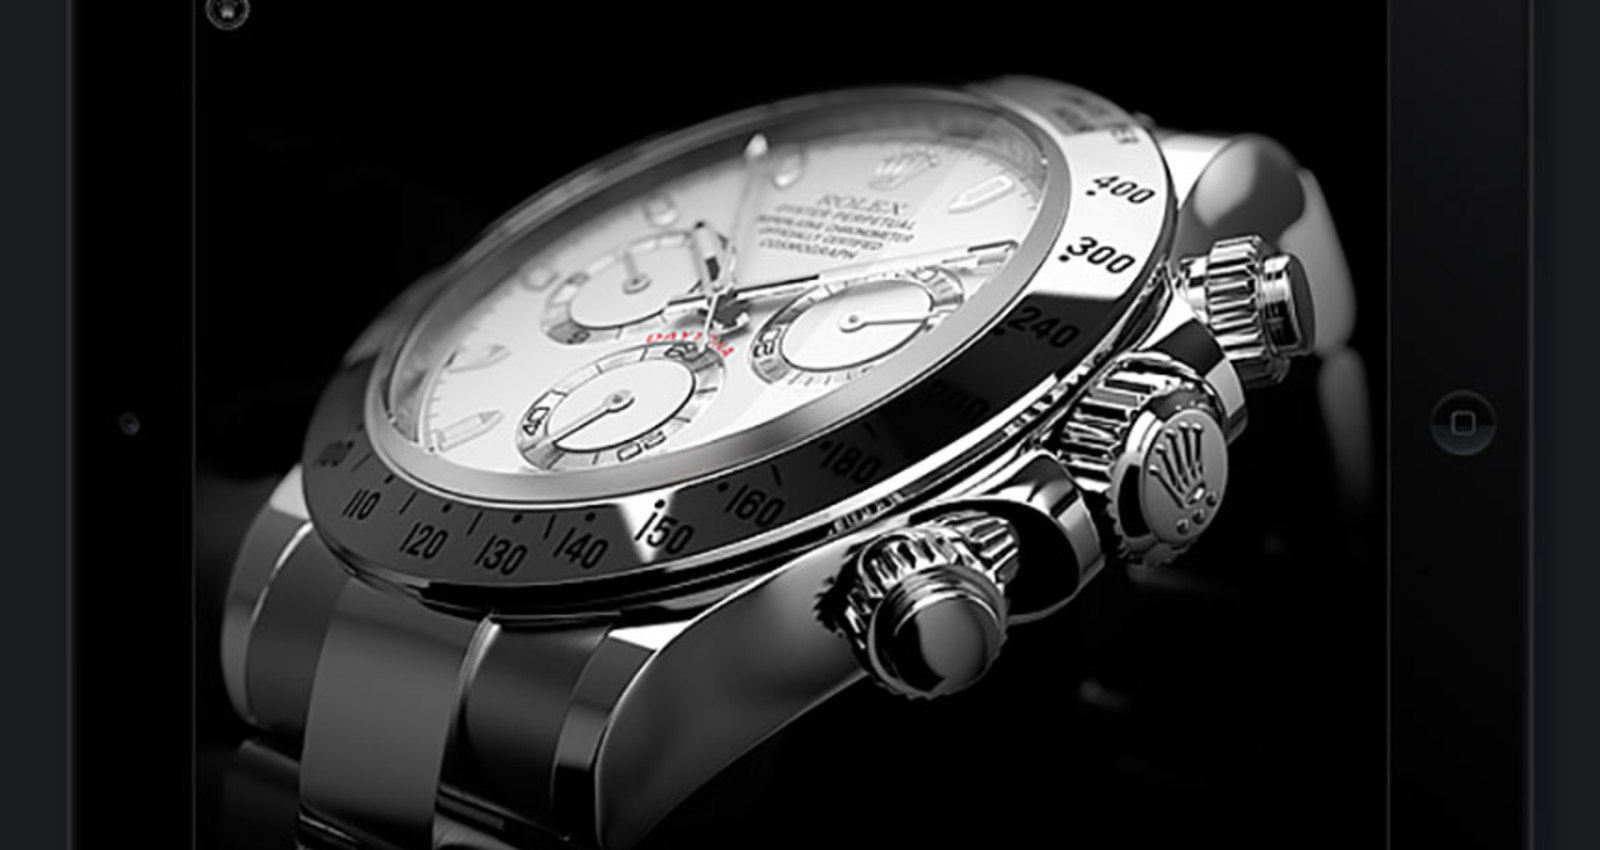 The Rolex Daytona Experience